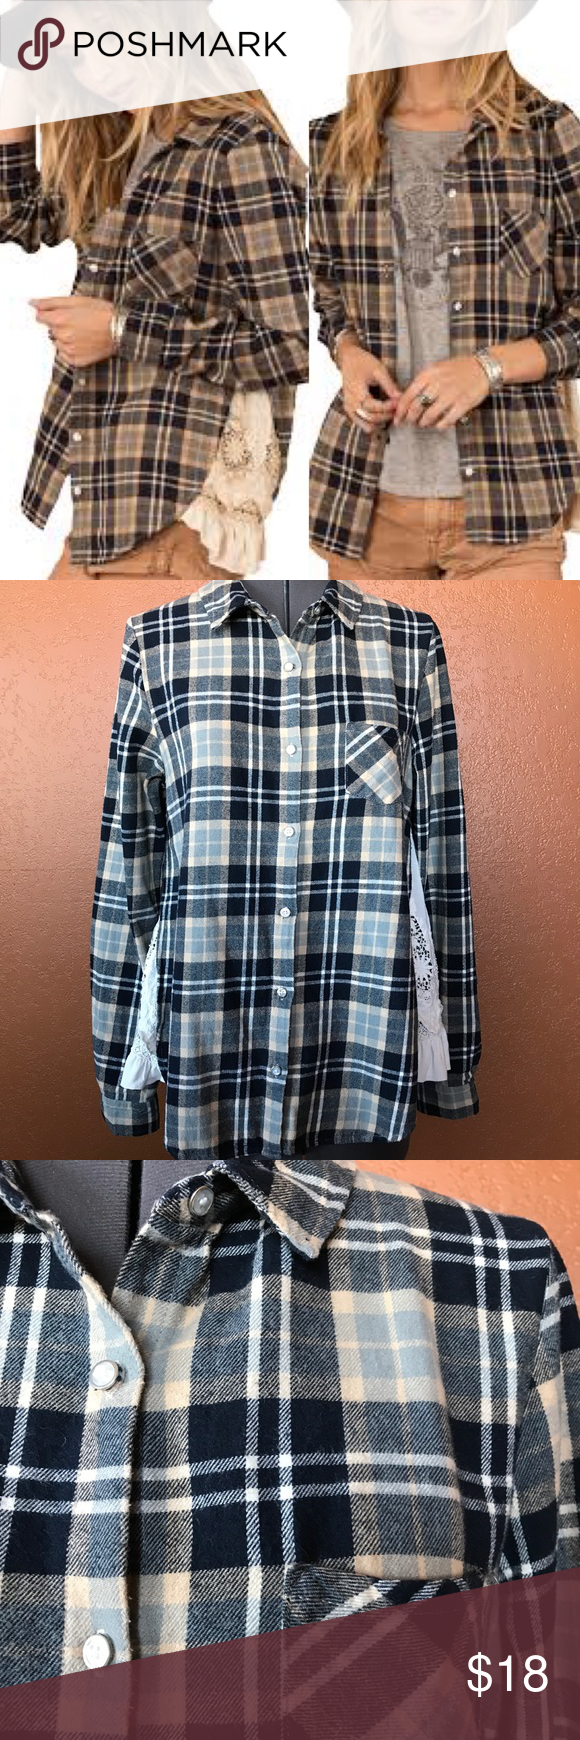 d8b2fed24ad White Crow Santa Fe Flannel with Lace Panels Imagine stealing your  boyfriend s or hubby s favorite worn-in flannel and customizing it with  ruffled lace on ...